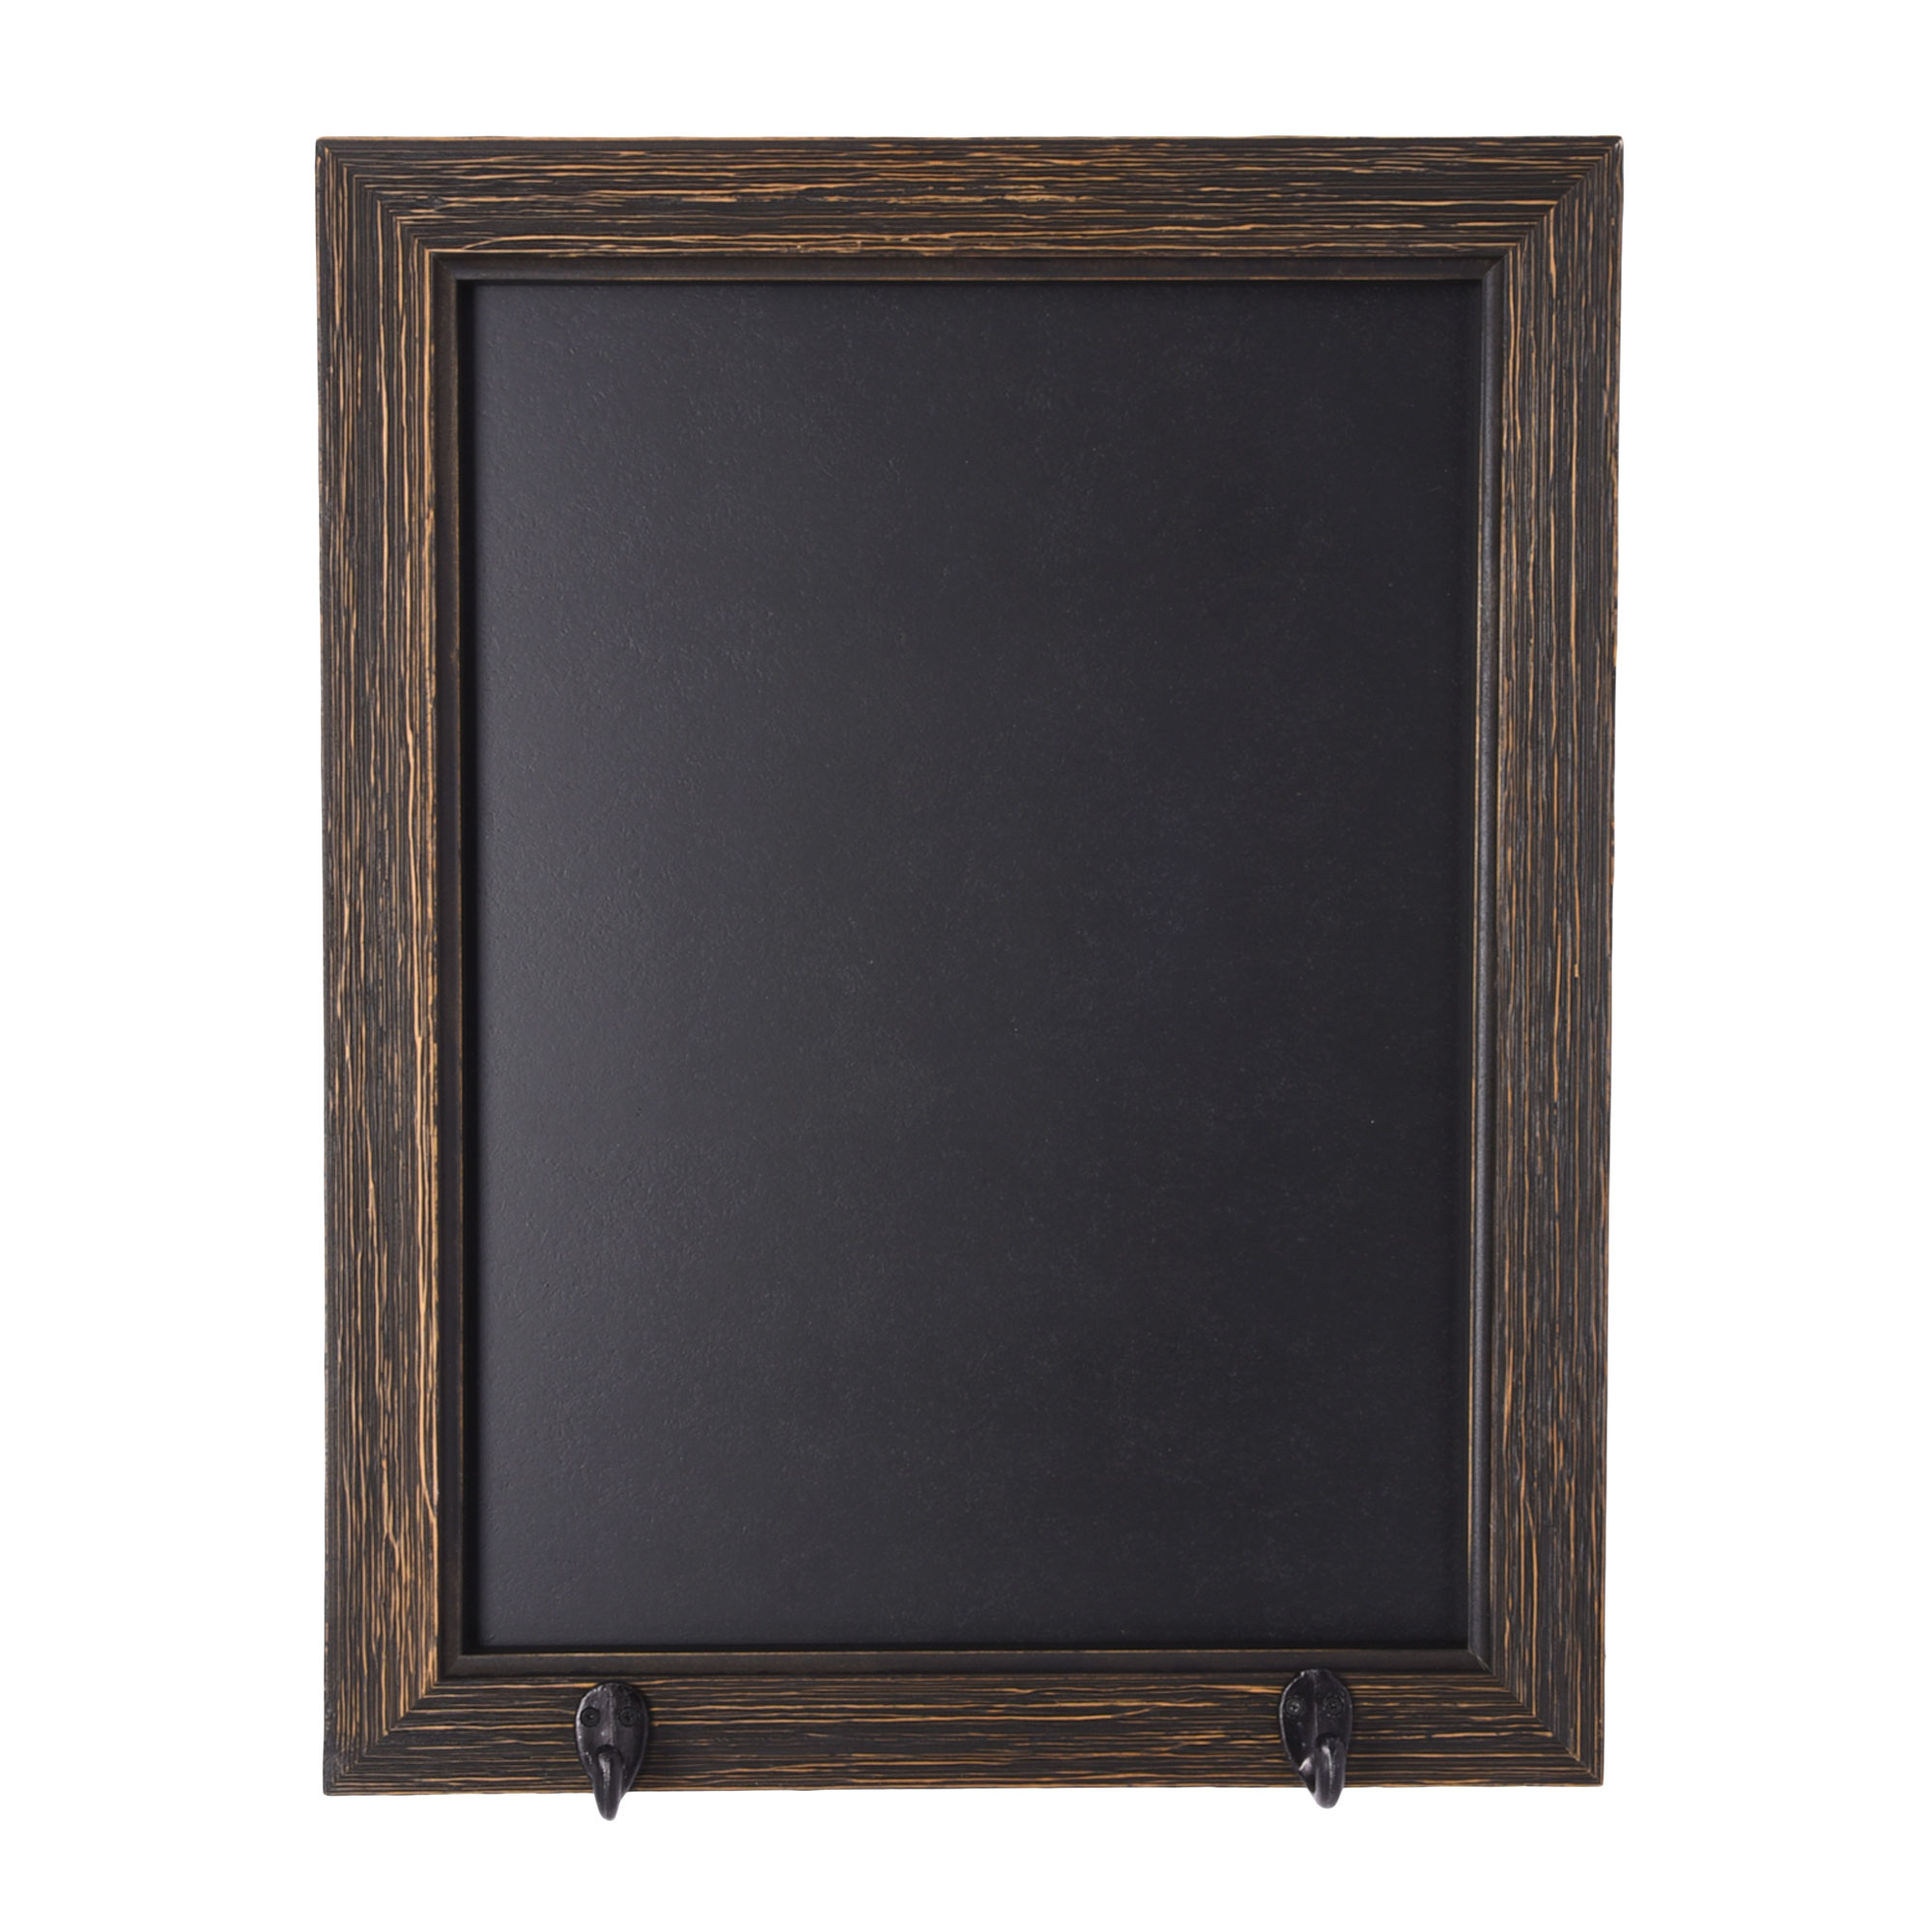 111129268-Wood Wire Brushed Chalkboard with Hooks 12 x 16 -1.jpg